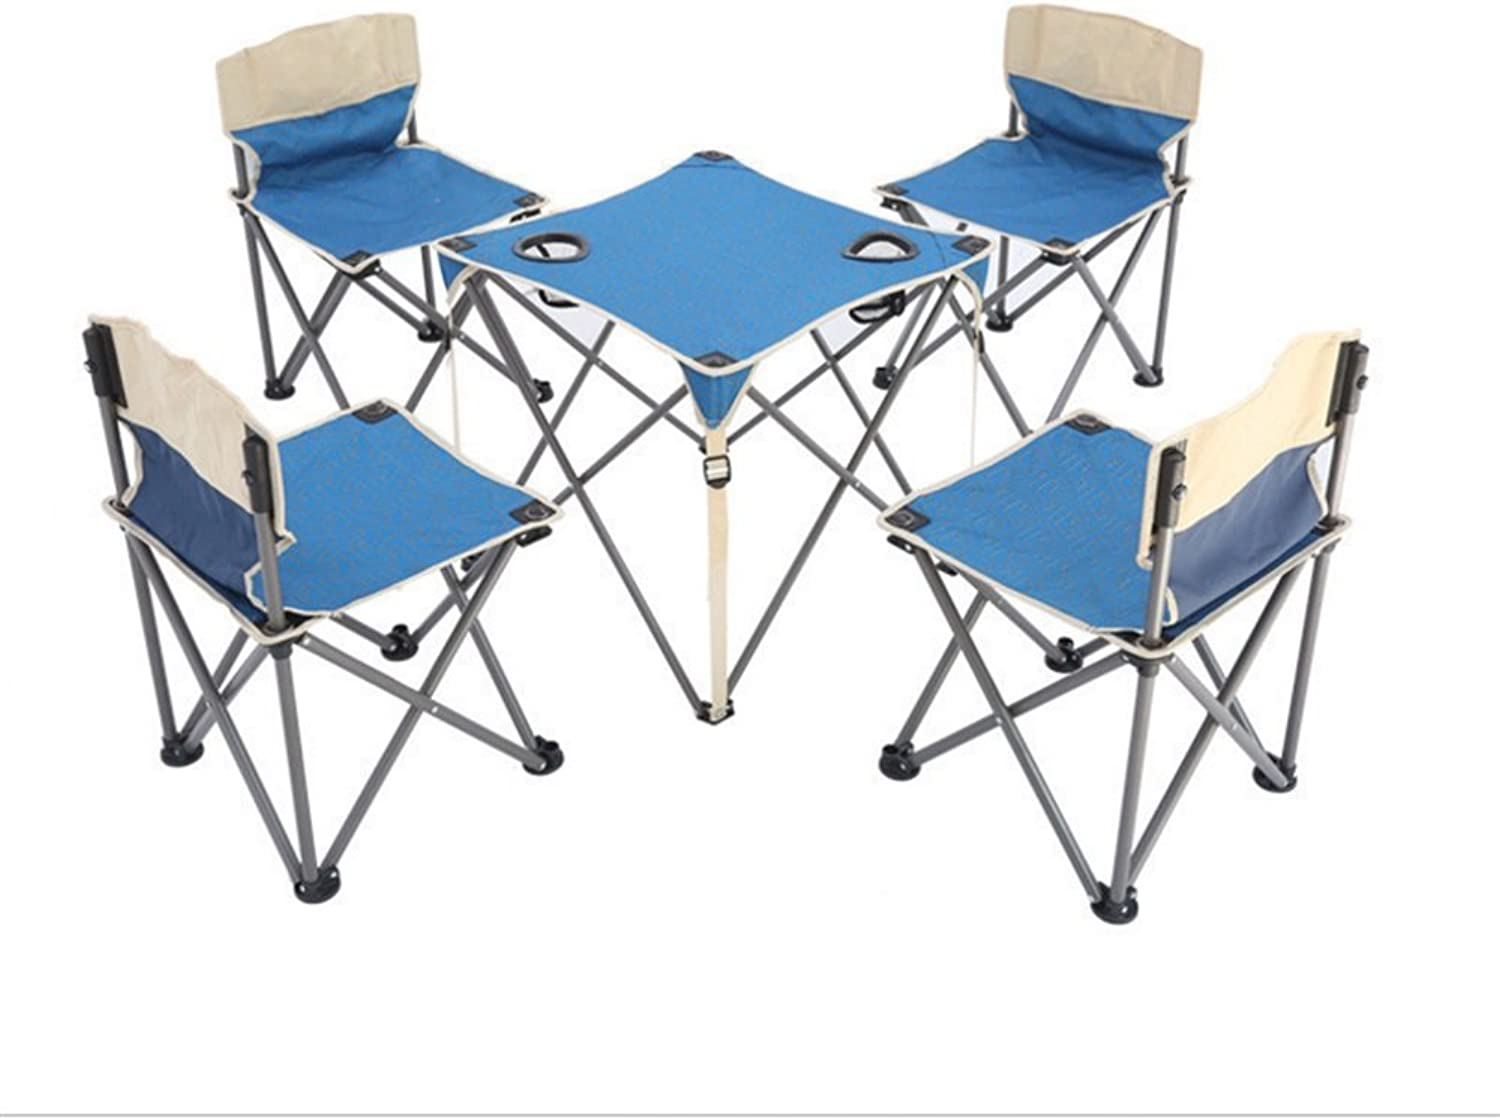 Outdoor Folding Chair Outdoor FivePiece Set Portable Folding Tables and Chairs Camping Tables and Chairs Picnic Table Coffee Table